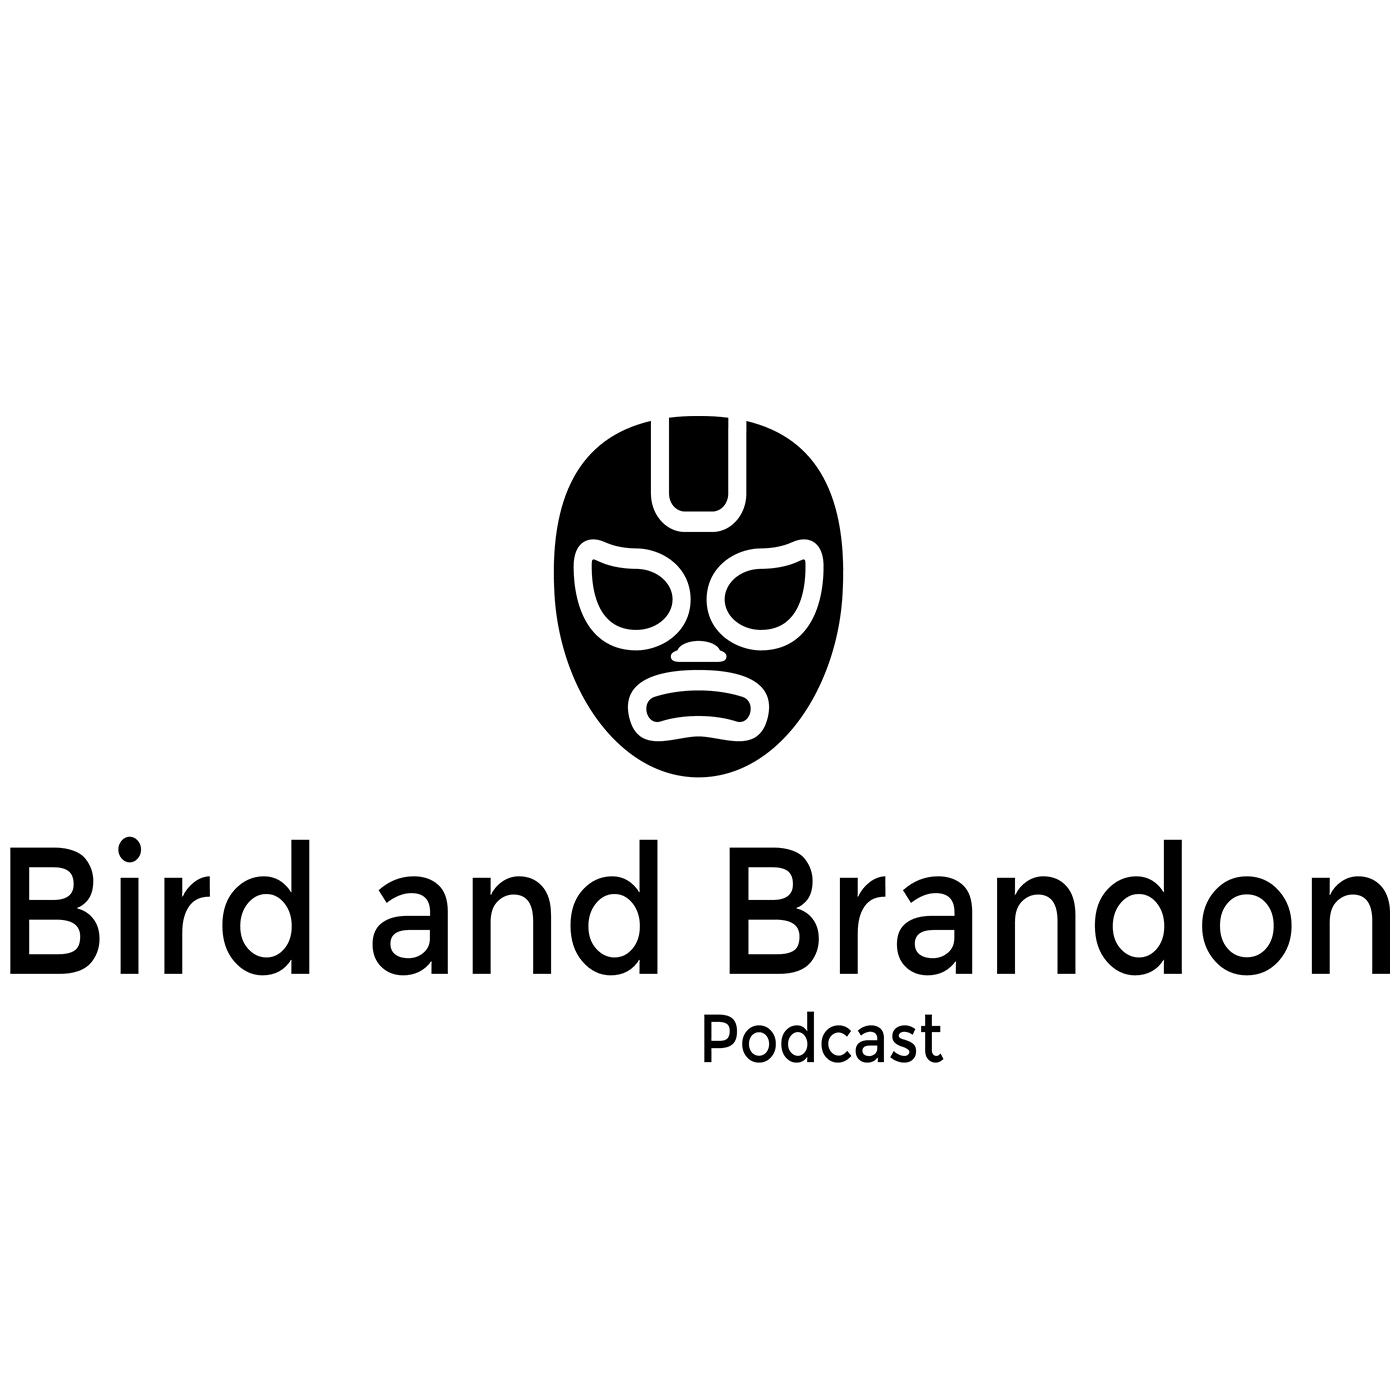 Bird and Brandon Podcast